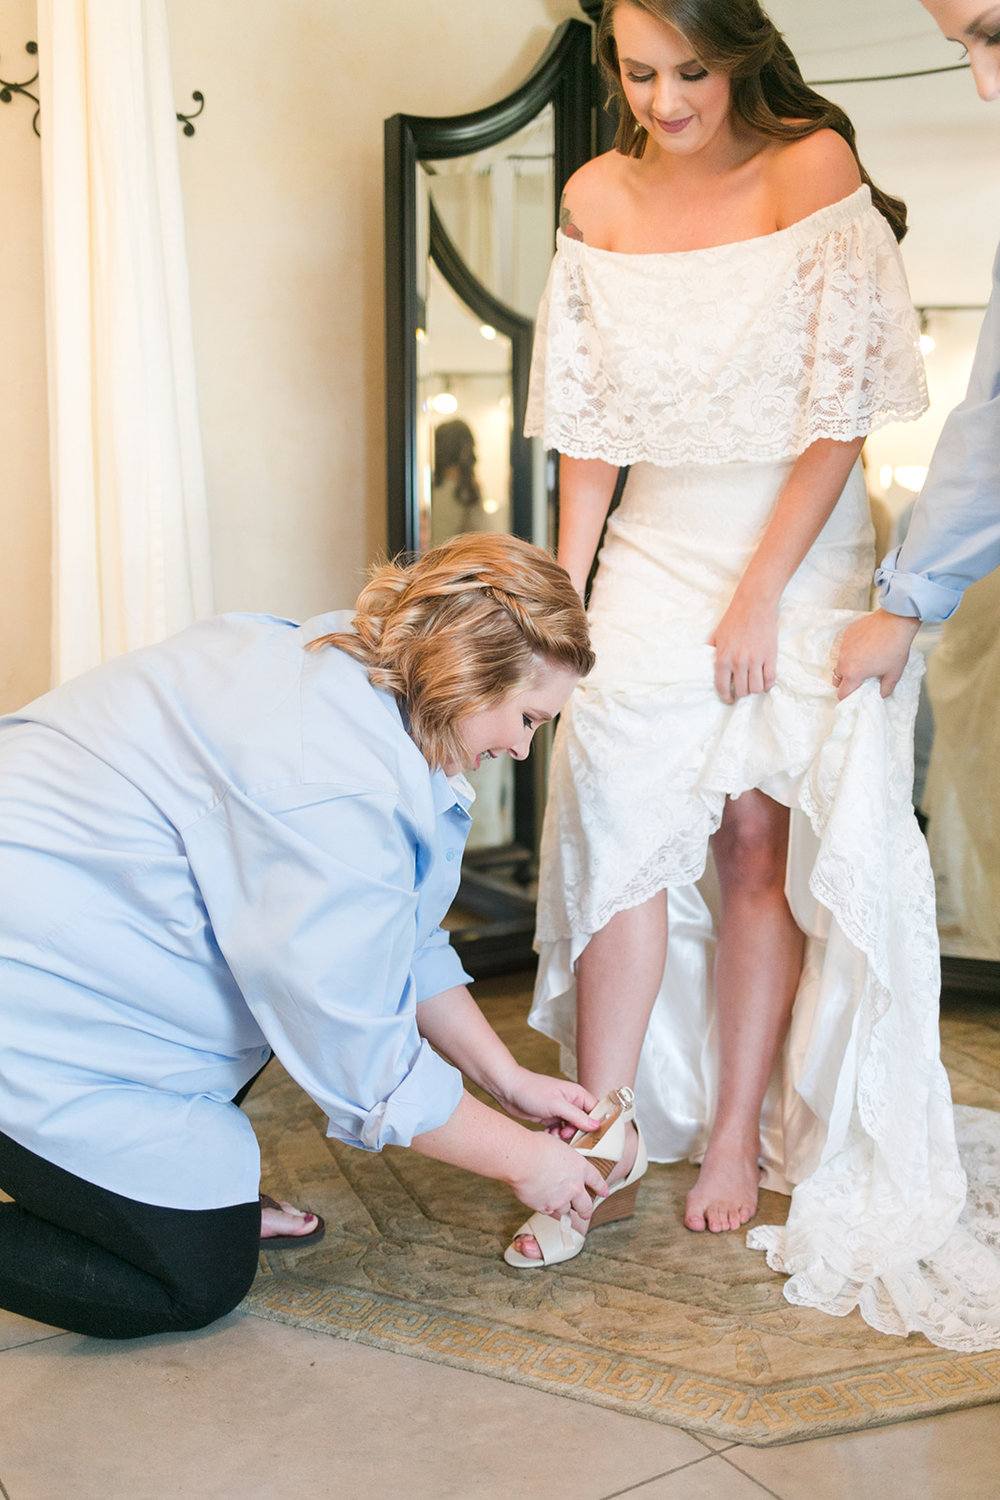 ivory-and-beau-bridal-boutique-i-and-b-bride-hillary-sidney-middlebrooks-photography-winnie-daughters-of-simone-the-venue-at-tryphena's-garden-5.jpg